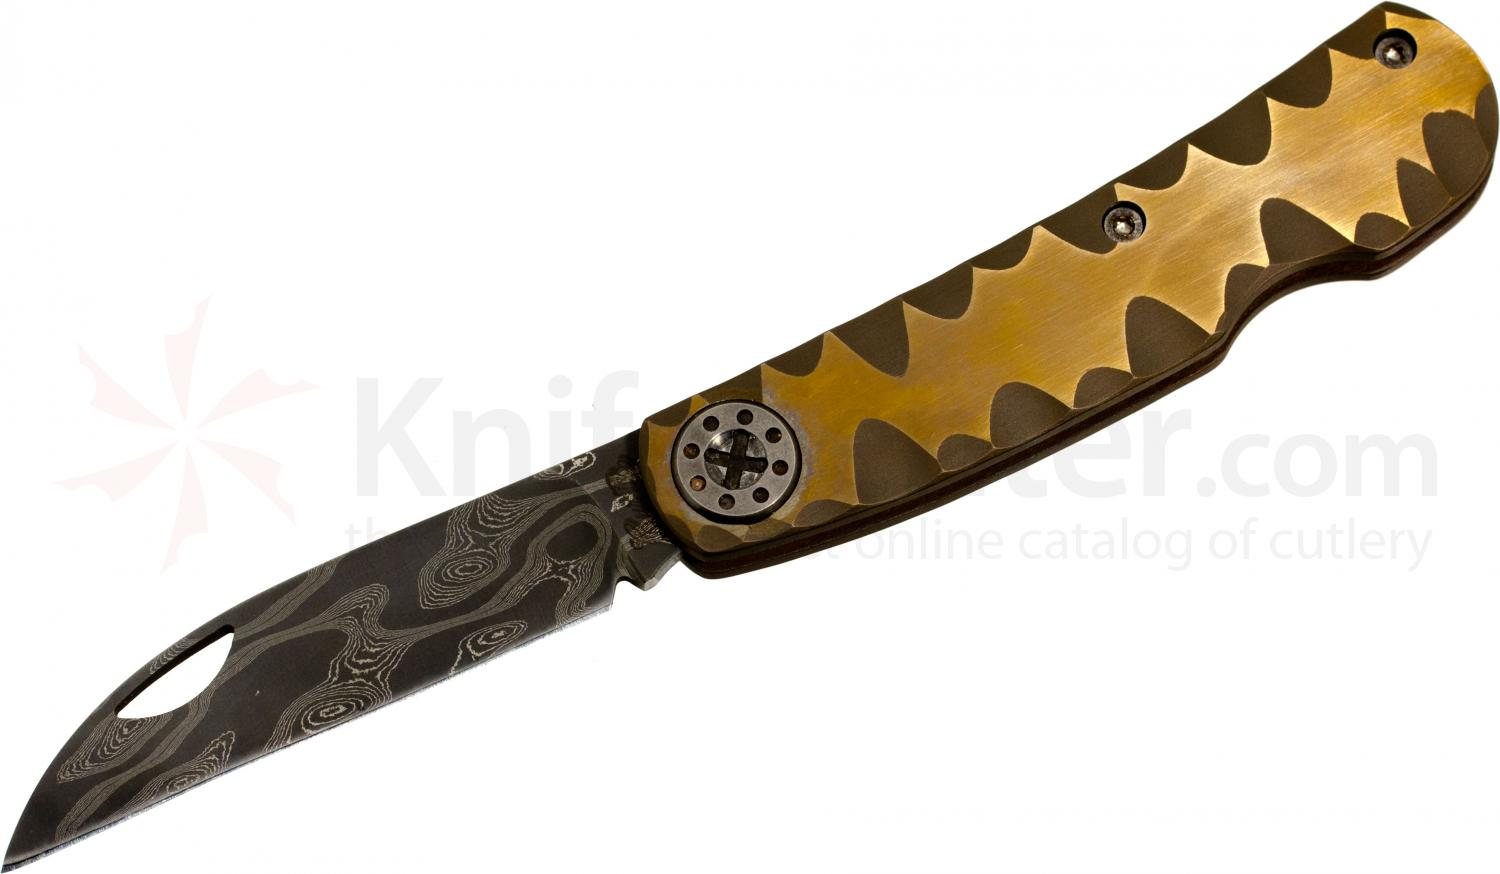 Curtiss Knives Swaytac Slipjoint 3 inch Chad Nichols Damascus Wharncliffe Blade, Carved Bronze Titanium Handle